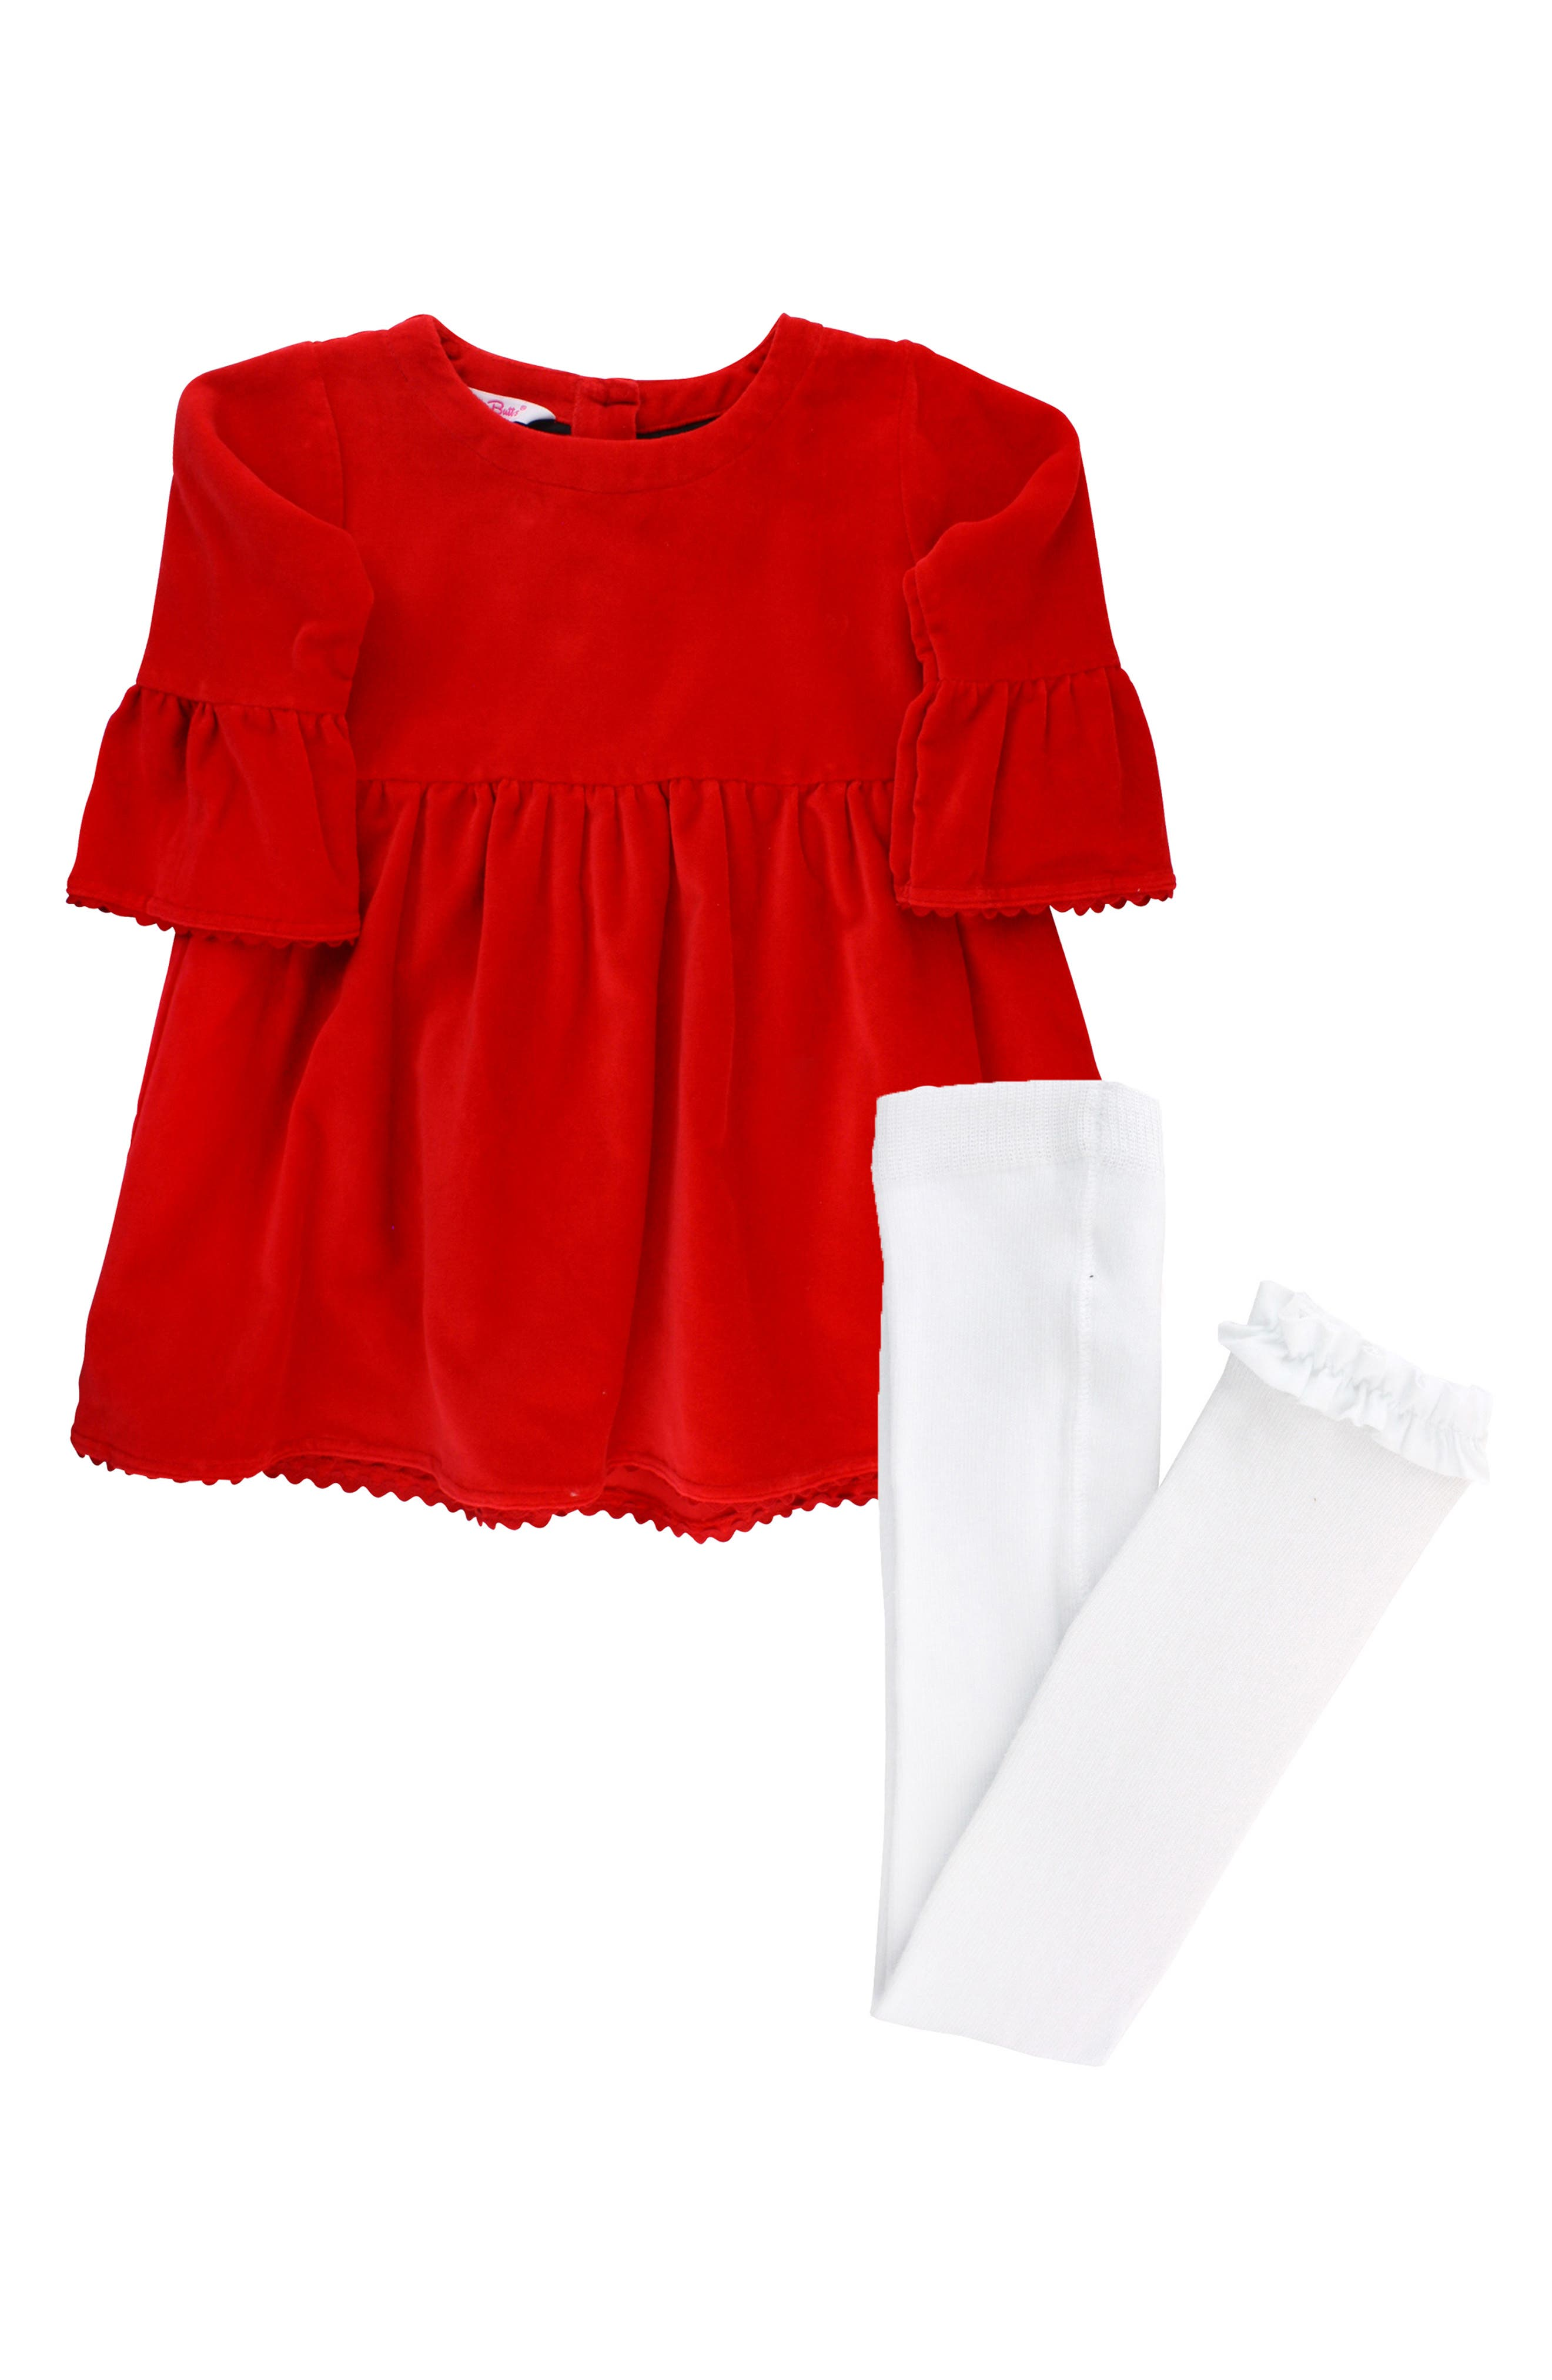 Velveteen Dress & Ruffle Tights Set,                             Main thumbnail 1, color,                             RED